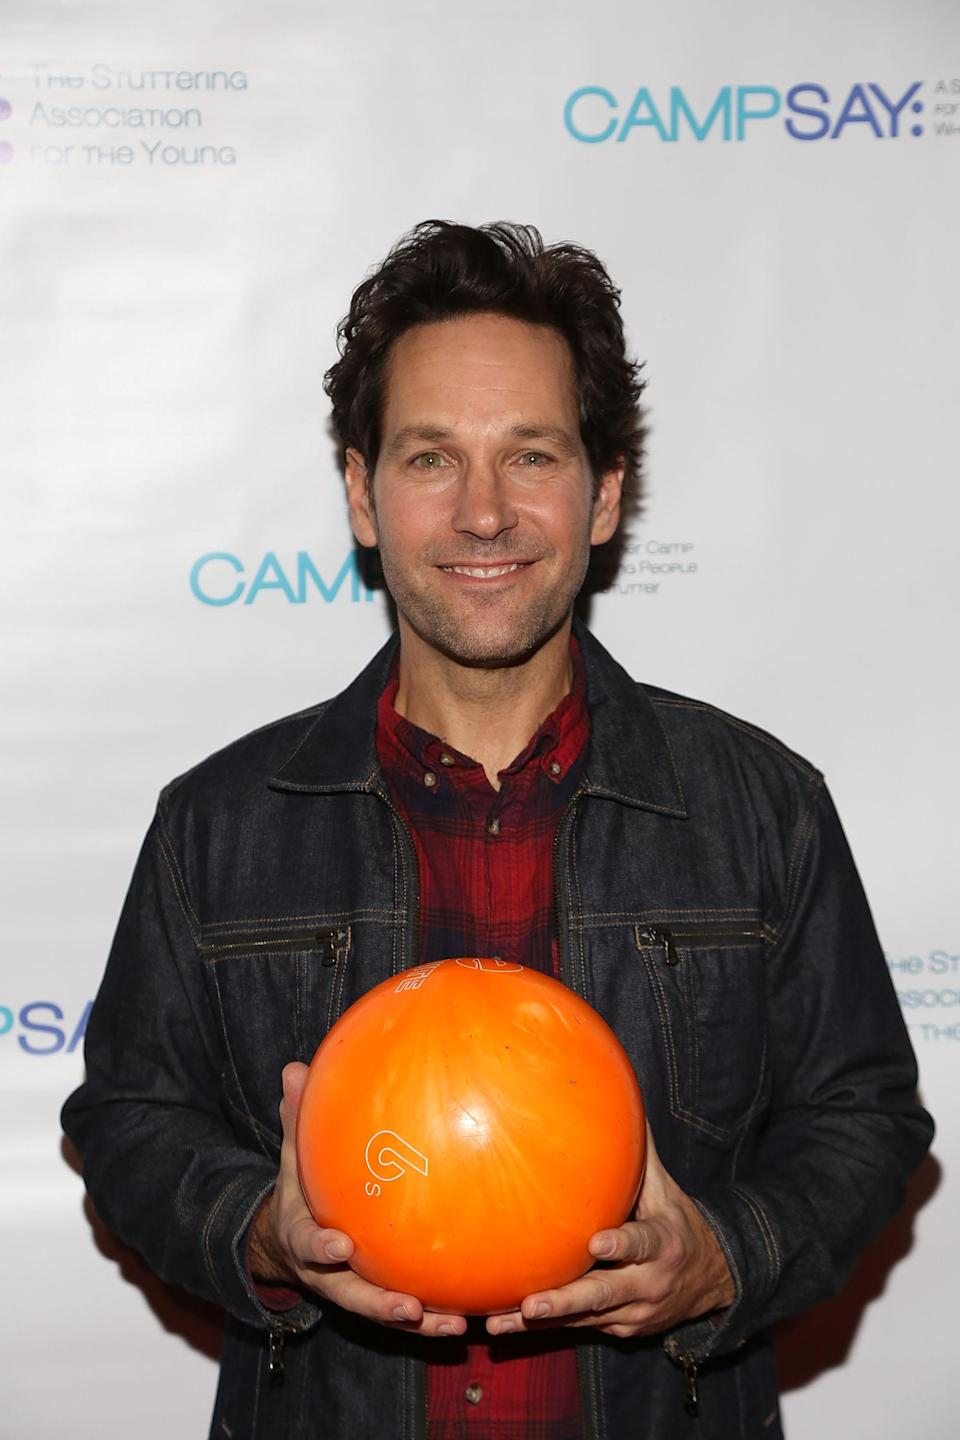 Paul Rudd at his seventh annual Paul Rudd All-Star Bowling Benefit for the Stuttering Association for the Young (SAY) at Lucky Strike Manhattan. (Photo: Manny Carabel/Getty Images)